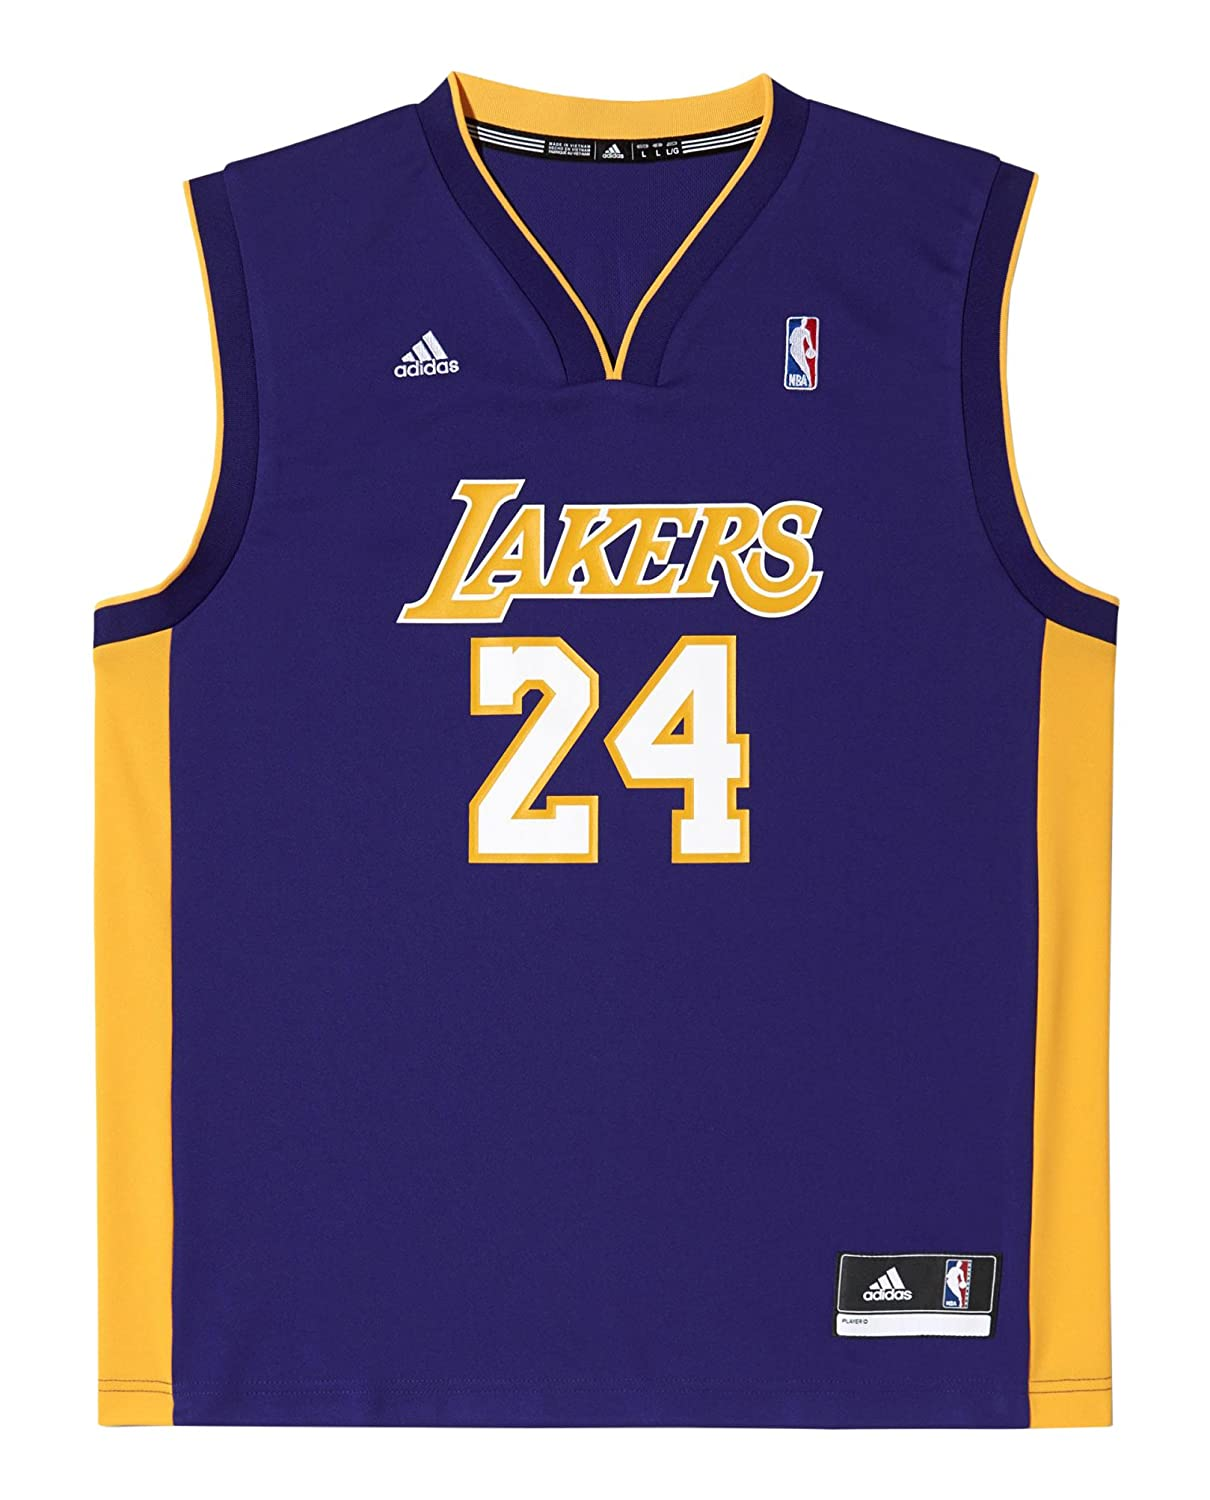 81cd69f5d9e8 ... adidas Kobe Bryant LA Lakers NBA Replica Mens Basketball Jersey  Amazon.co.uk Sports LOS ...